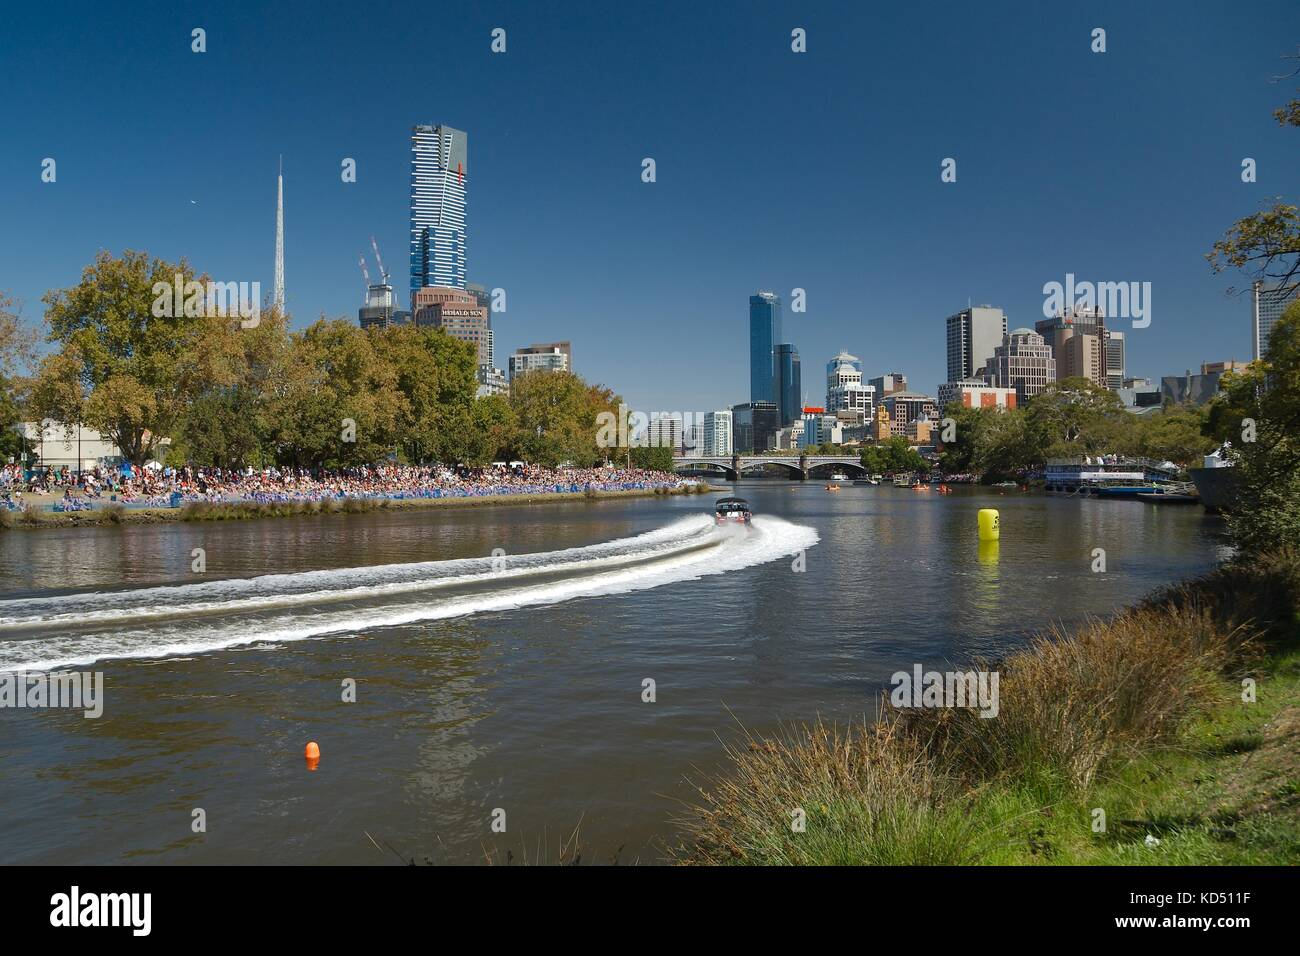 Melbourne city event Stock Photo